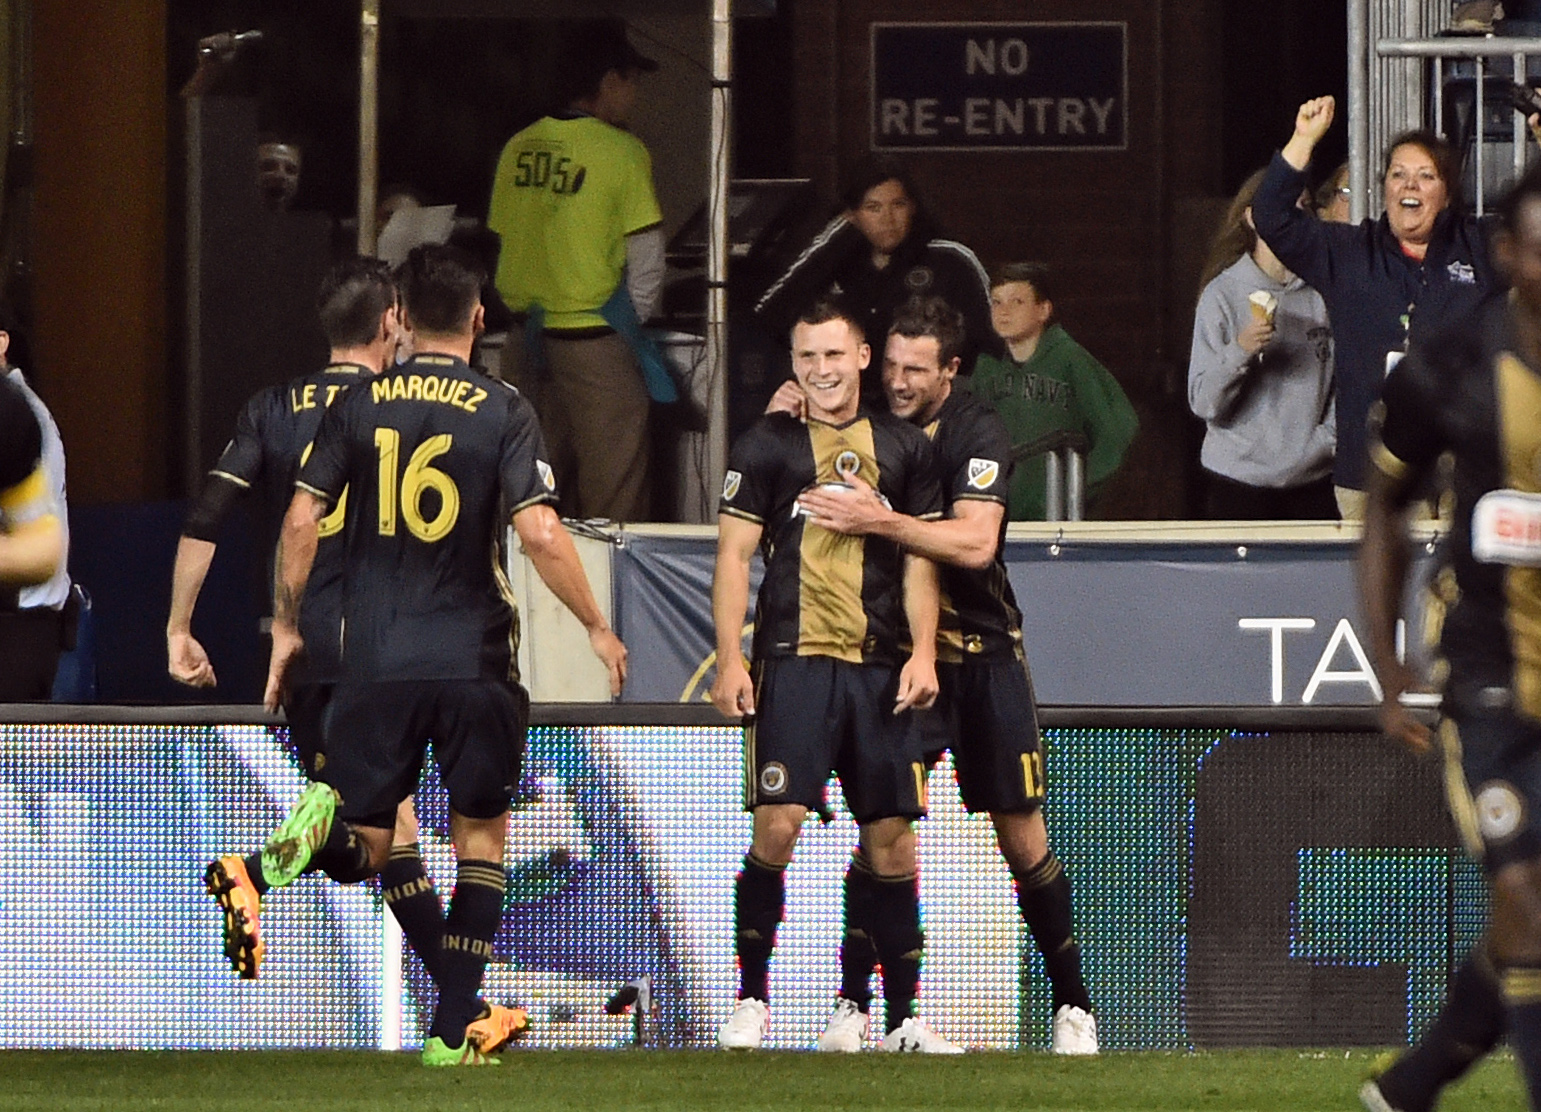 Rosenberry celebrates his first career MLS goal on Wednesday night against the LA Galaxy.